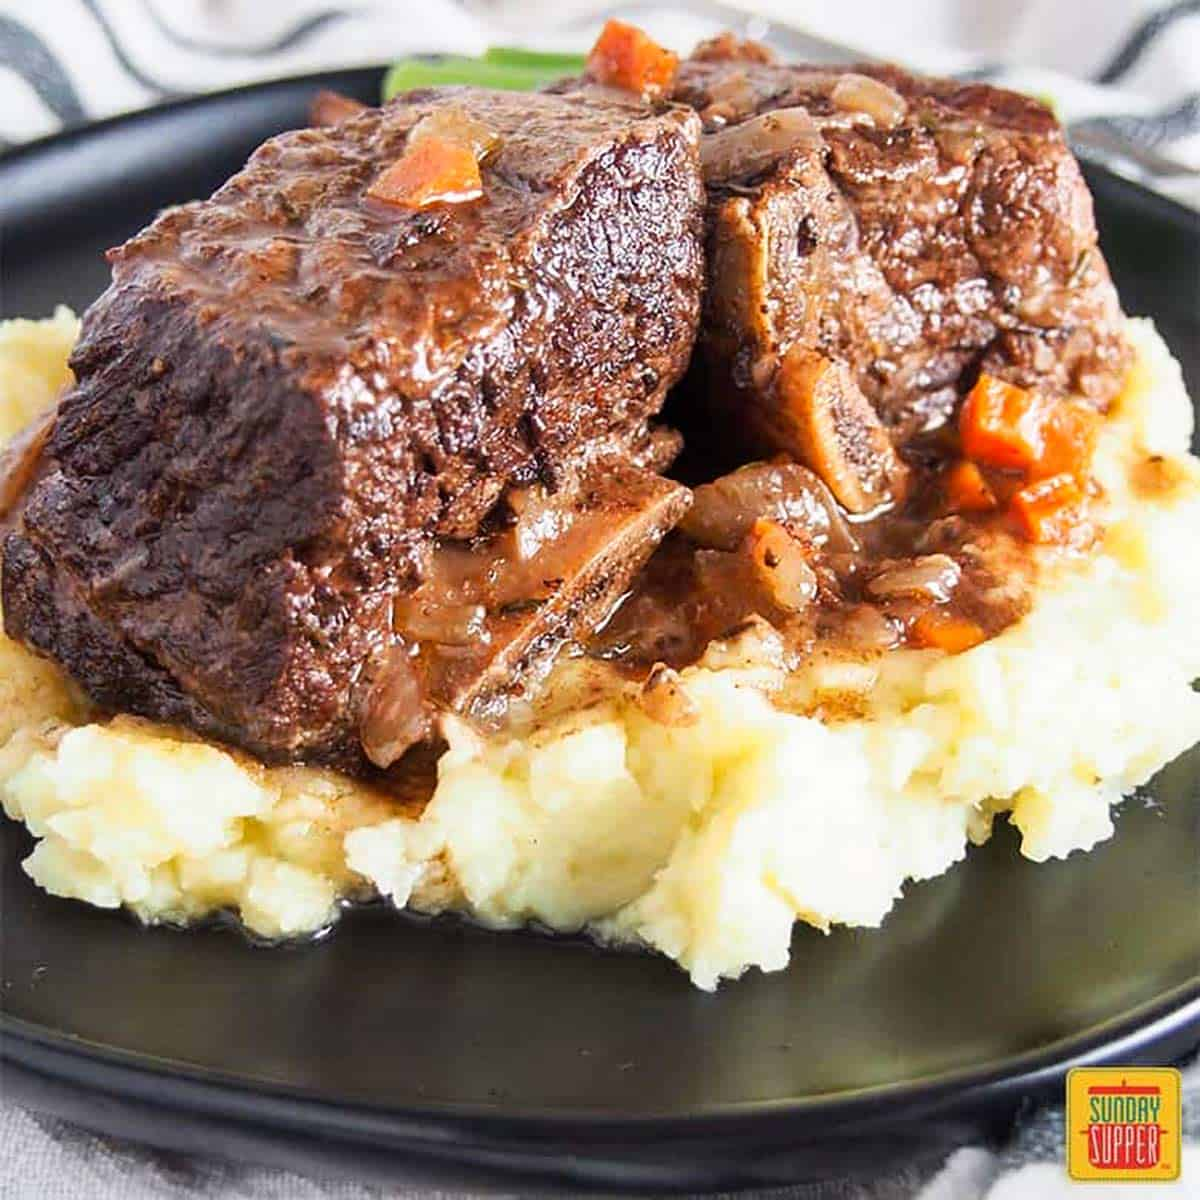 Slow cooker short ribs over a bed of mashed potatoes on a black platter